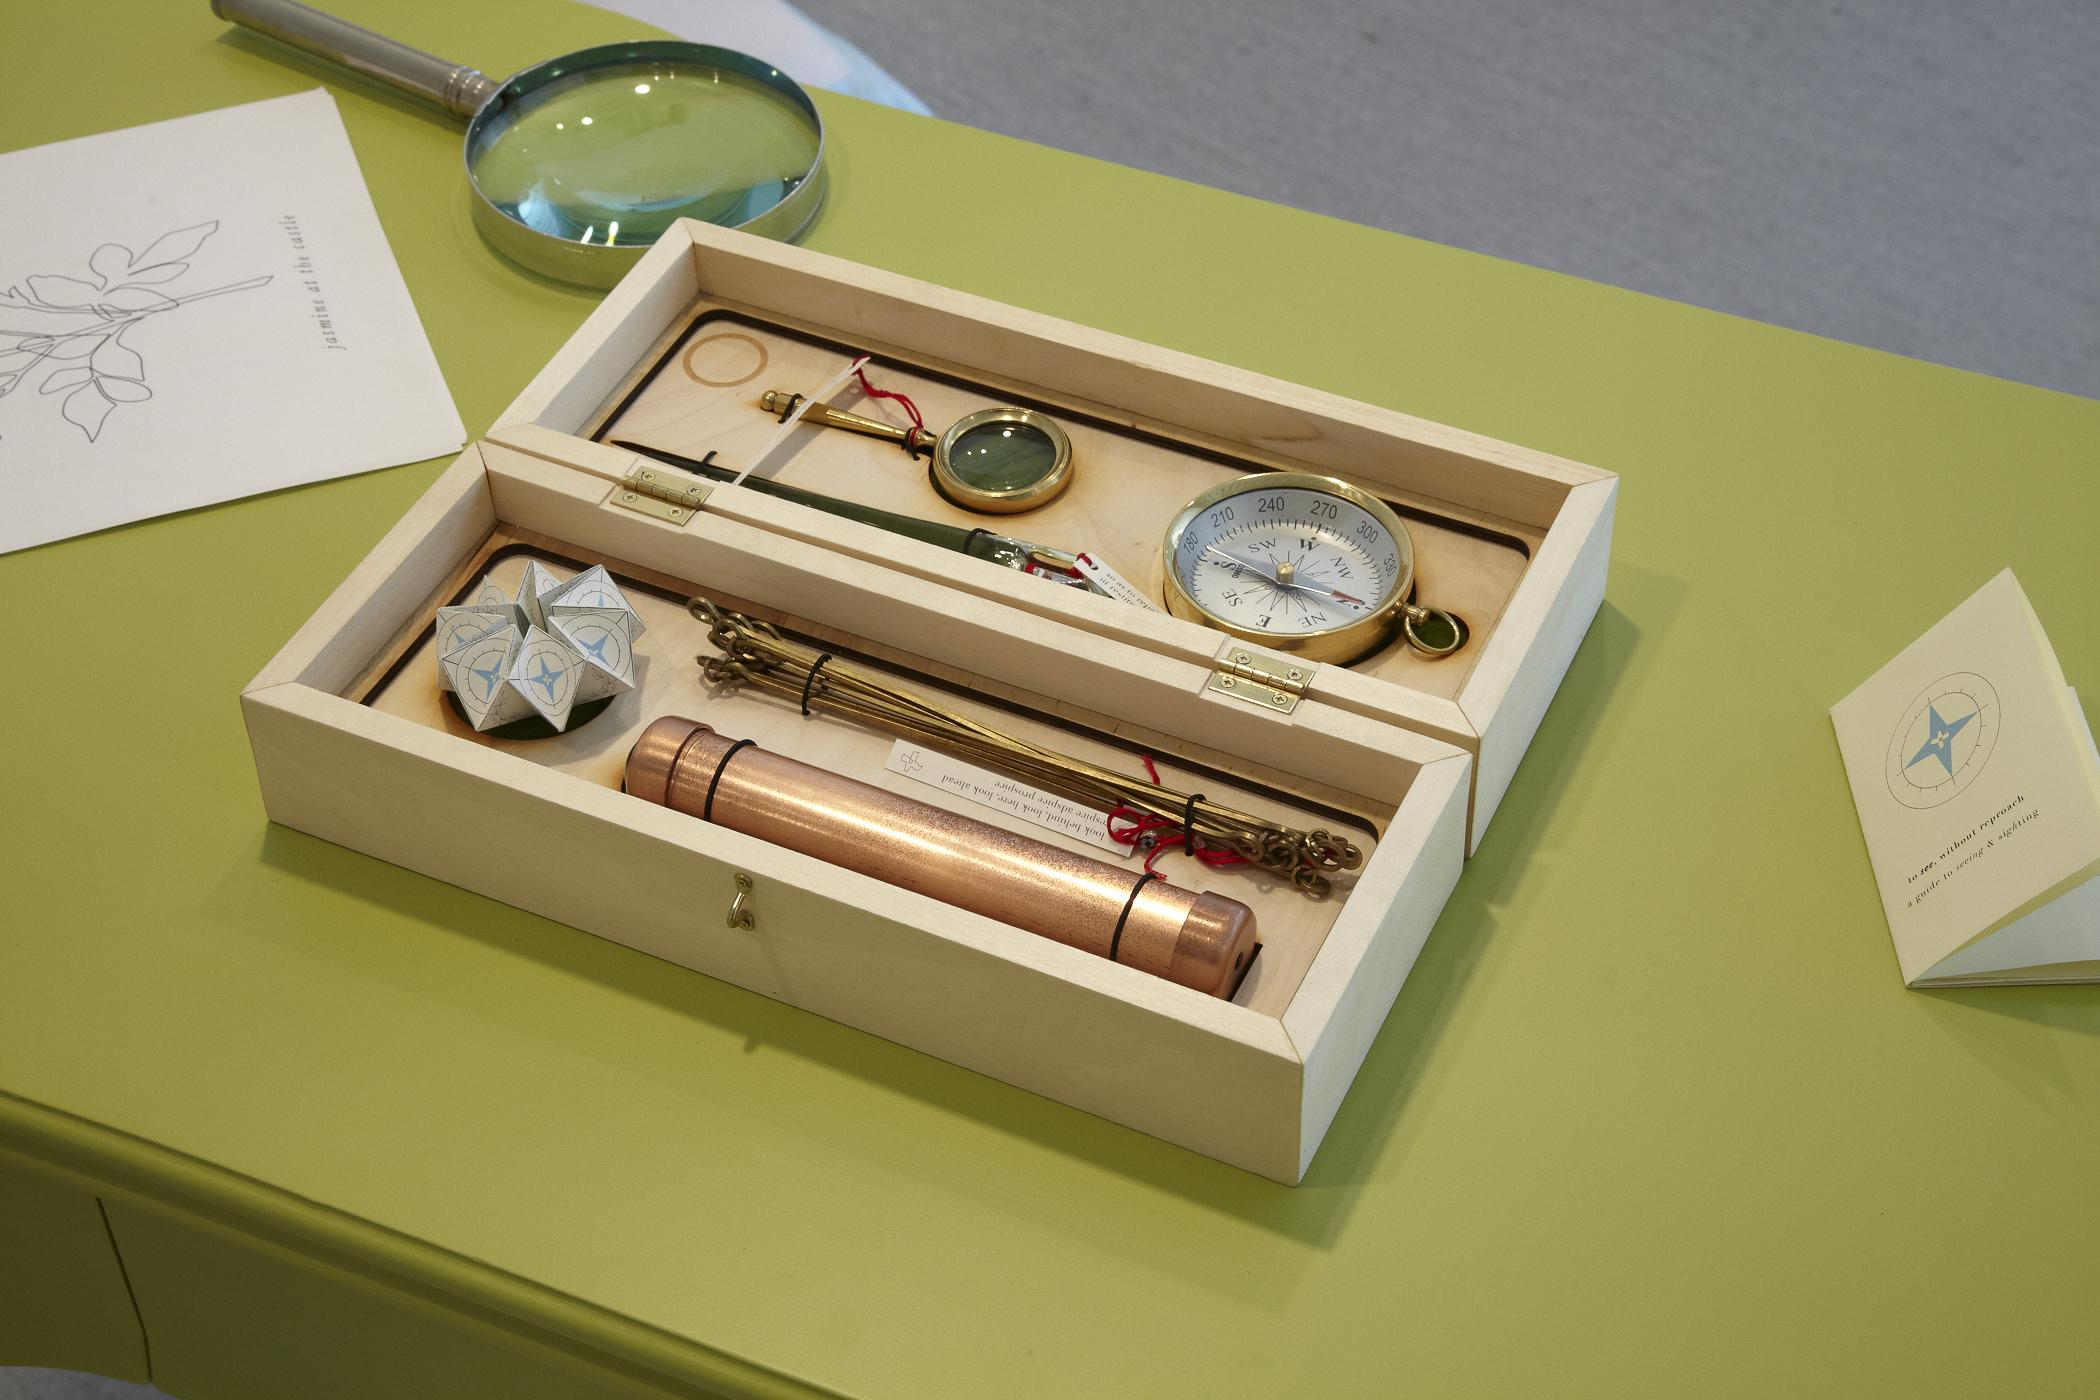 A box made of light wood holds small tools like a magnifying glass, compass, and telescope. It rests on a table alongside a larger magnifying glass and two written materials.